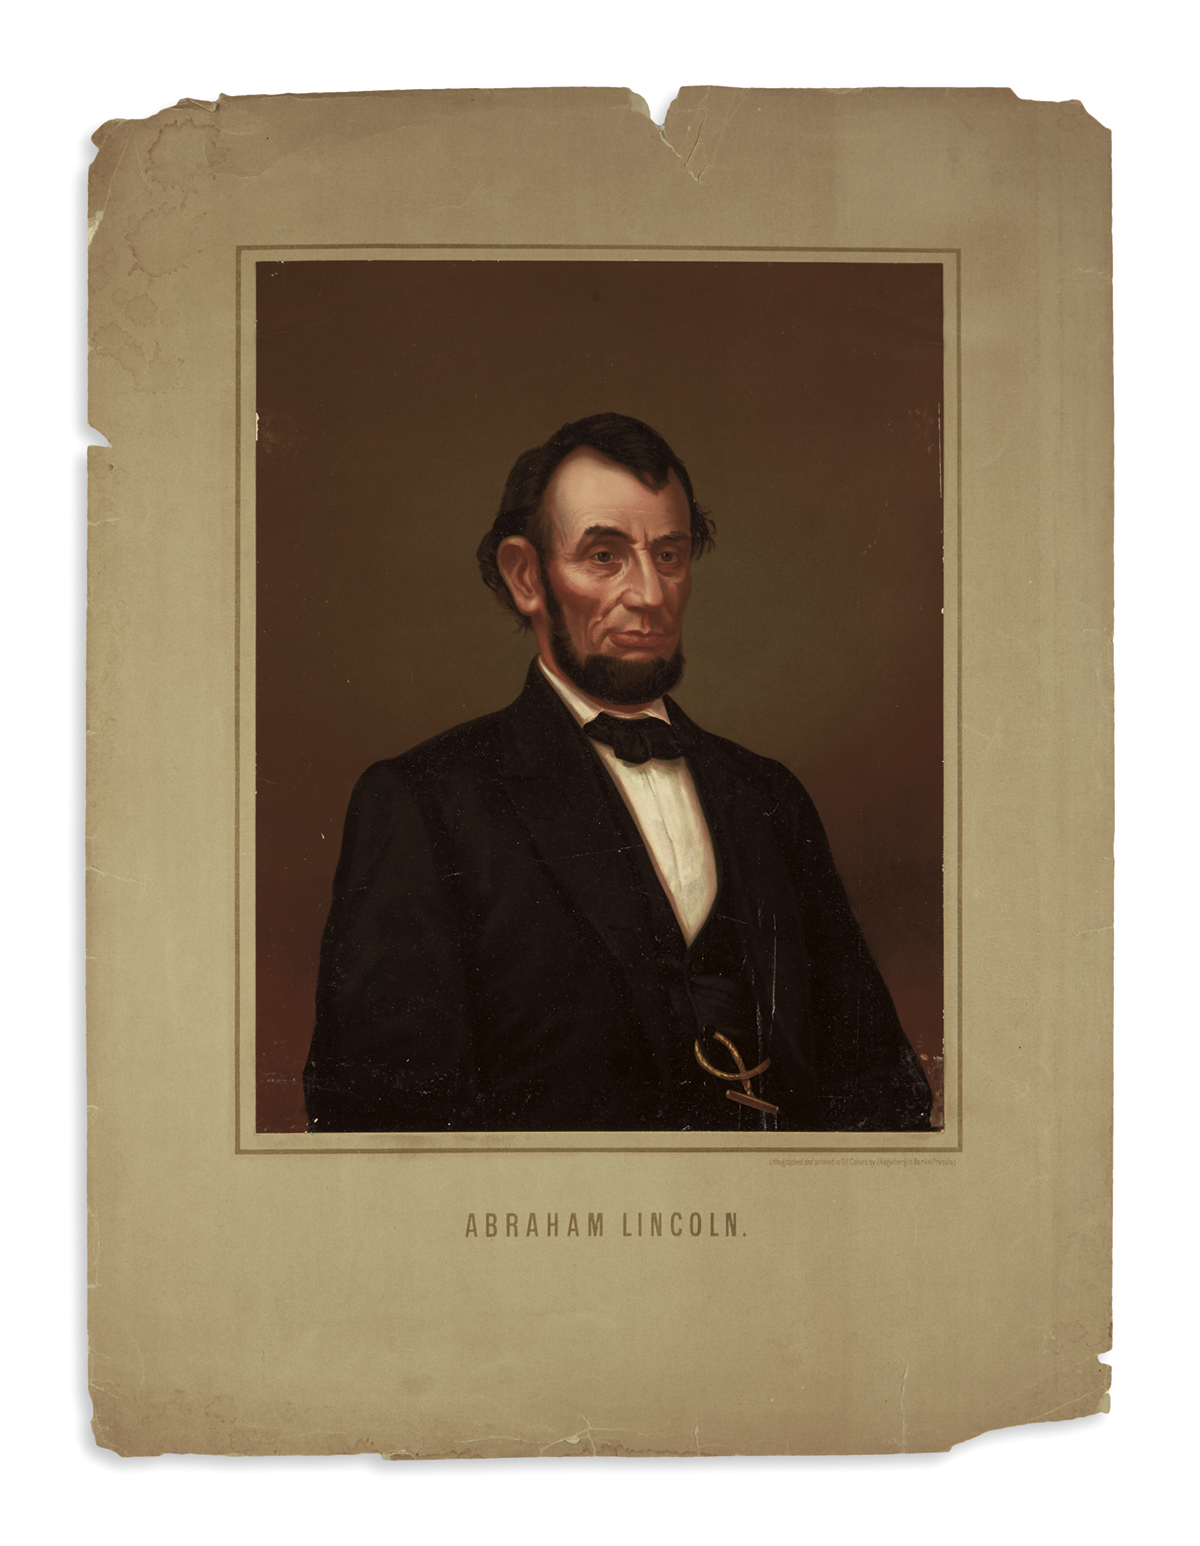 (PRINTS--PRESIDENTIAL)-Group-of-23-prints-of-Lincoln-publish